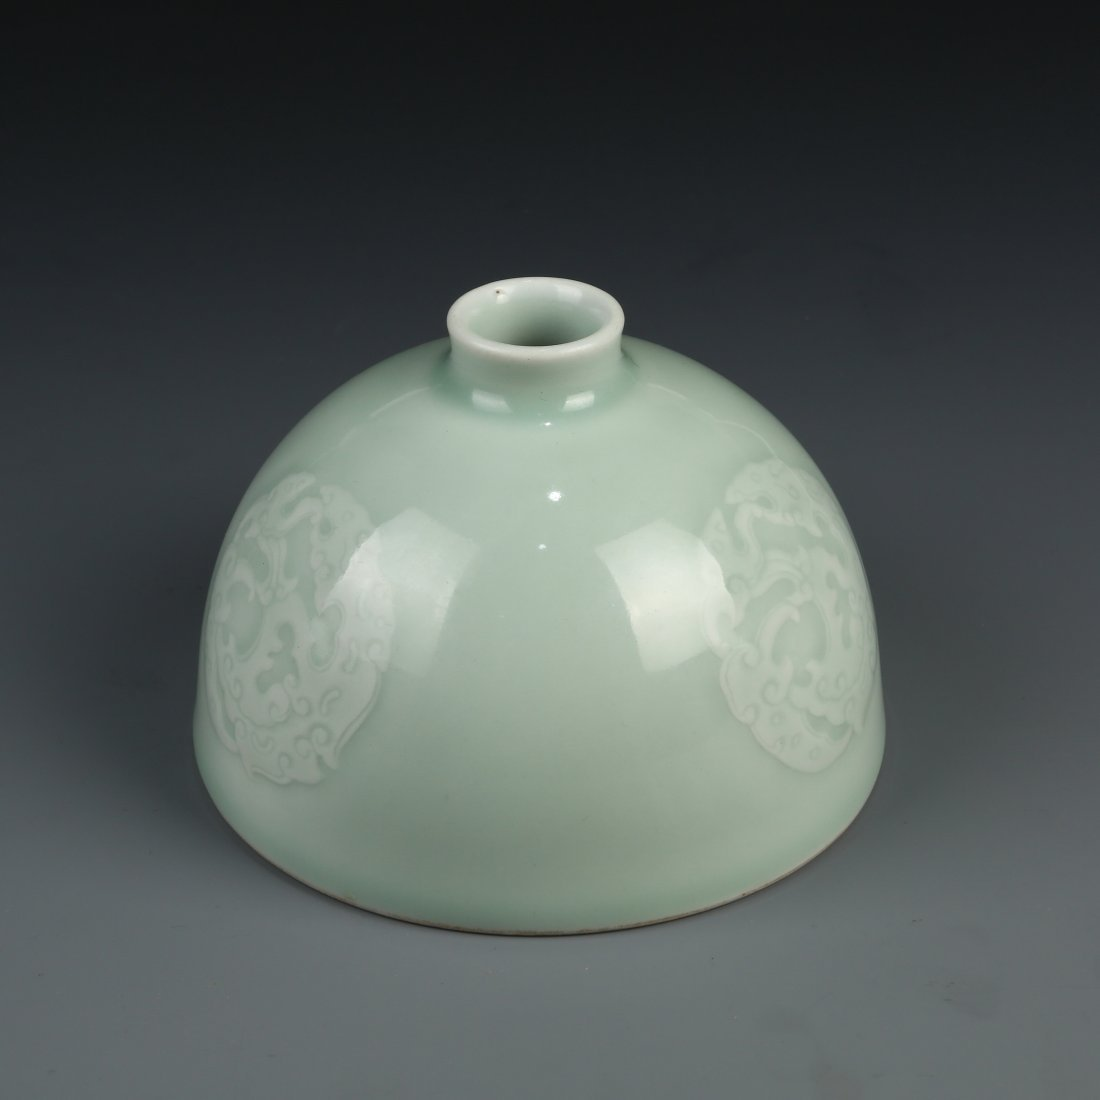 Celadon Glazed porcelain Bee Hive Water Pot with mark